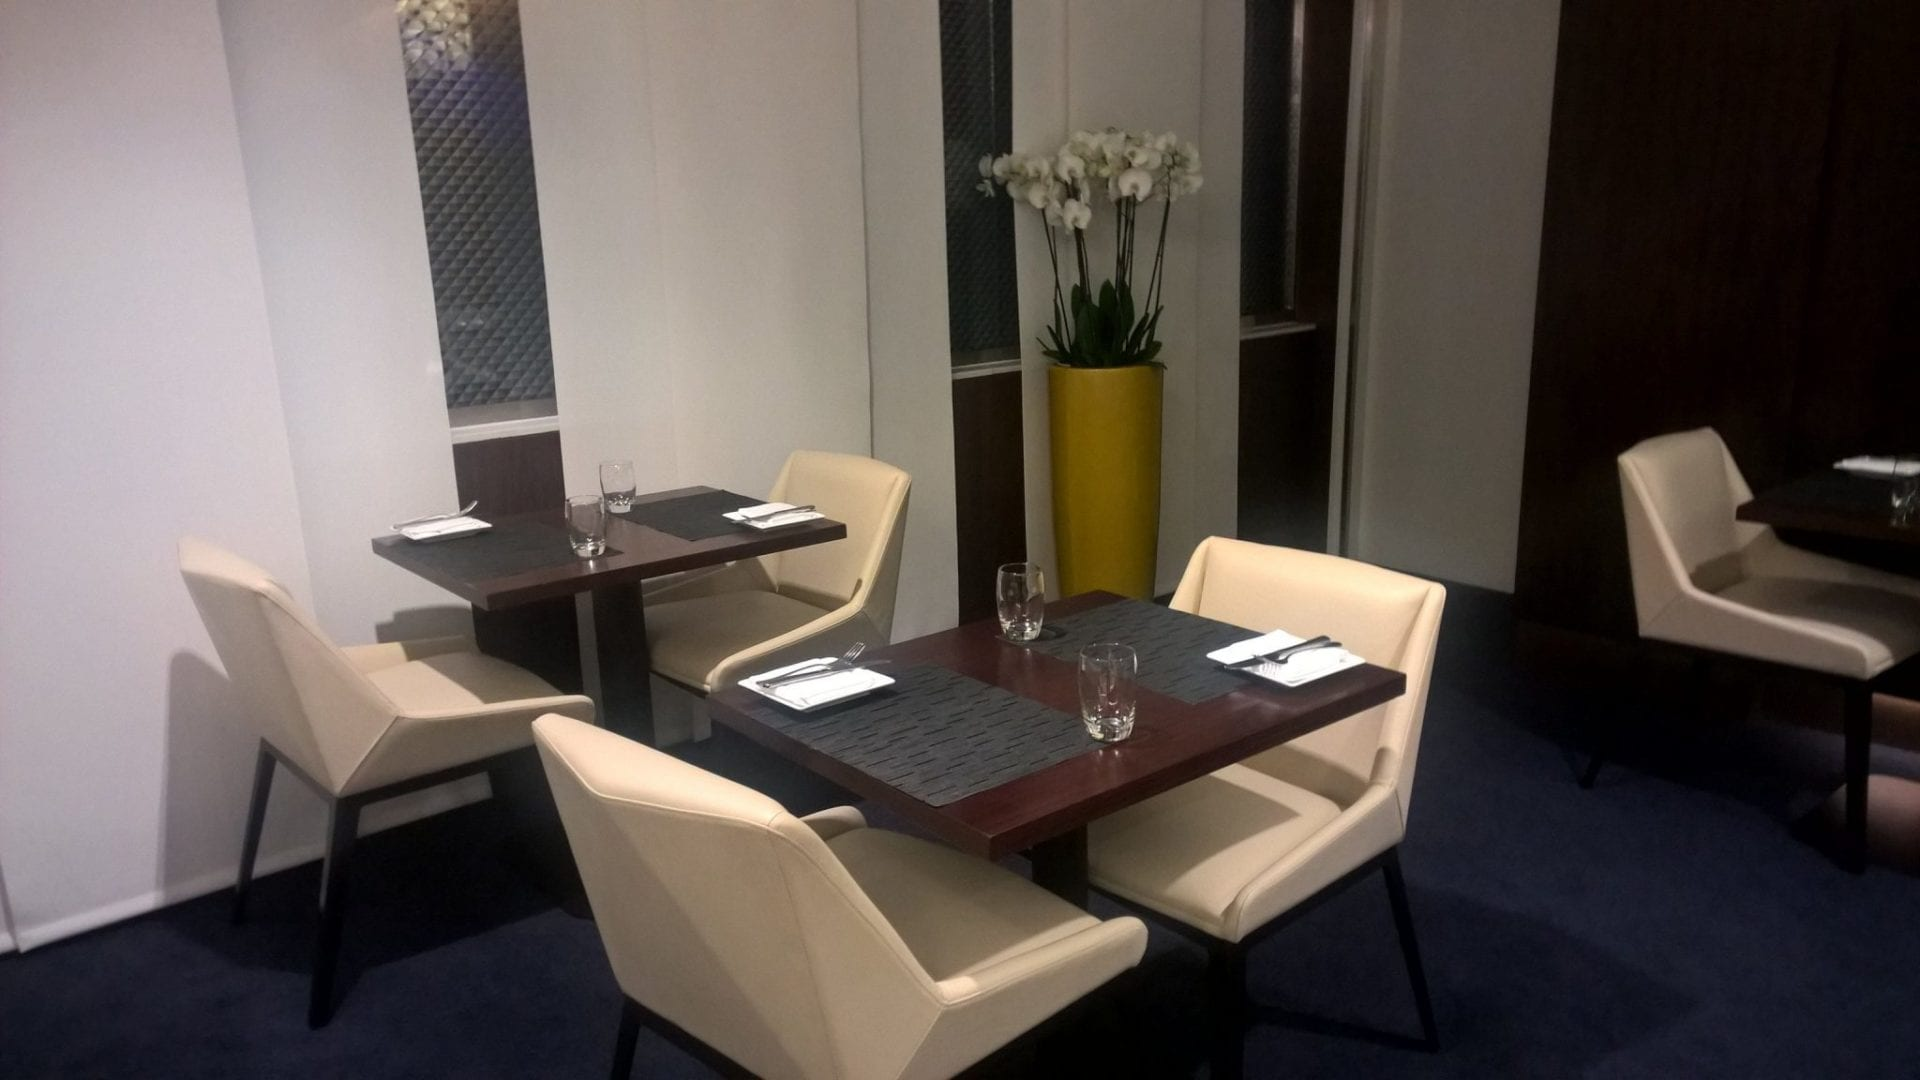 dining-table-etihad-abu-dhabi-t1-new